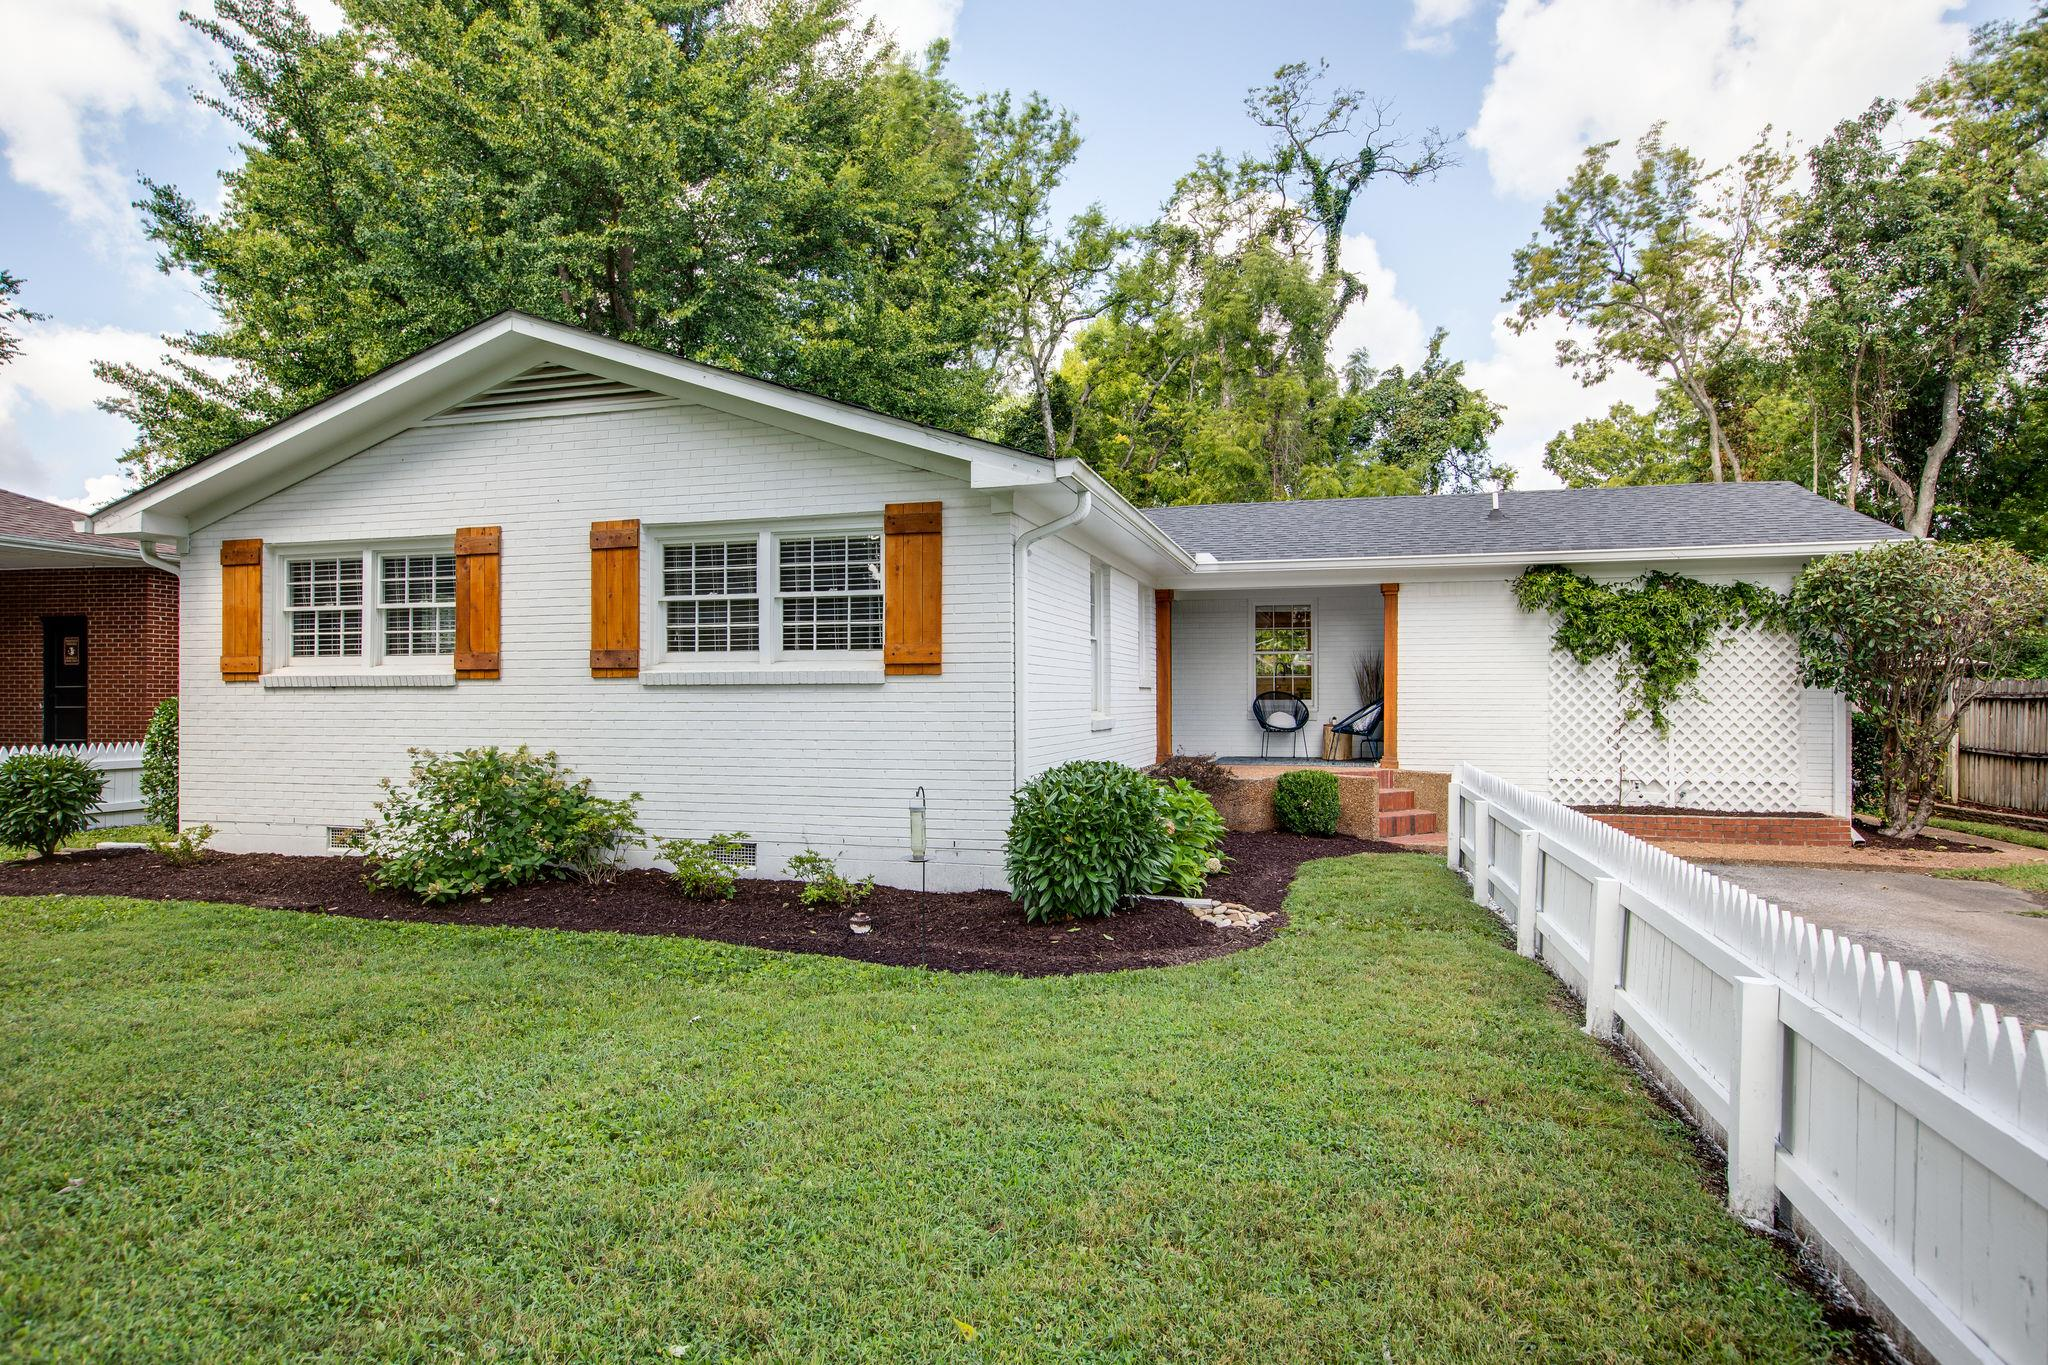 1502 Figuers Dr, Franklin, TN 37064 - Franklin, TN real estate listing